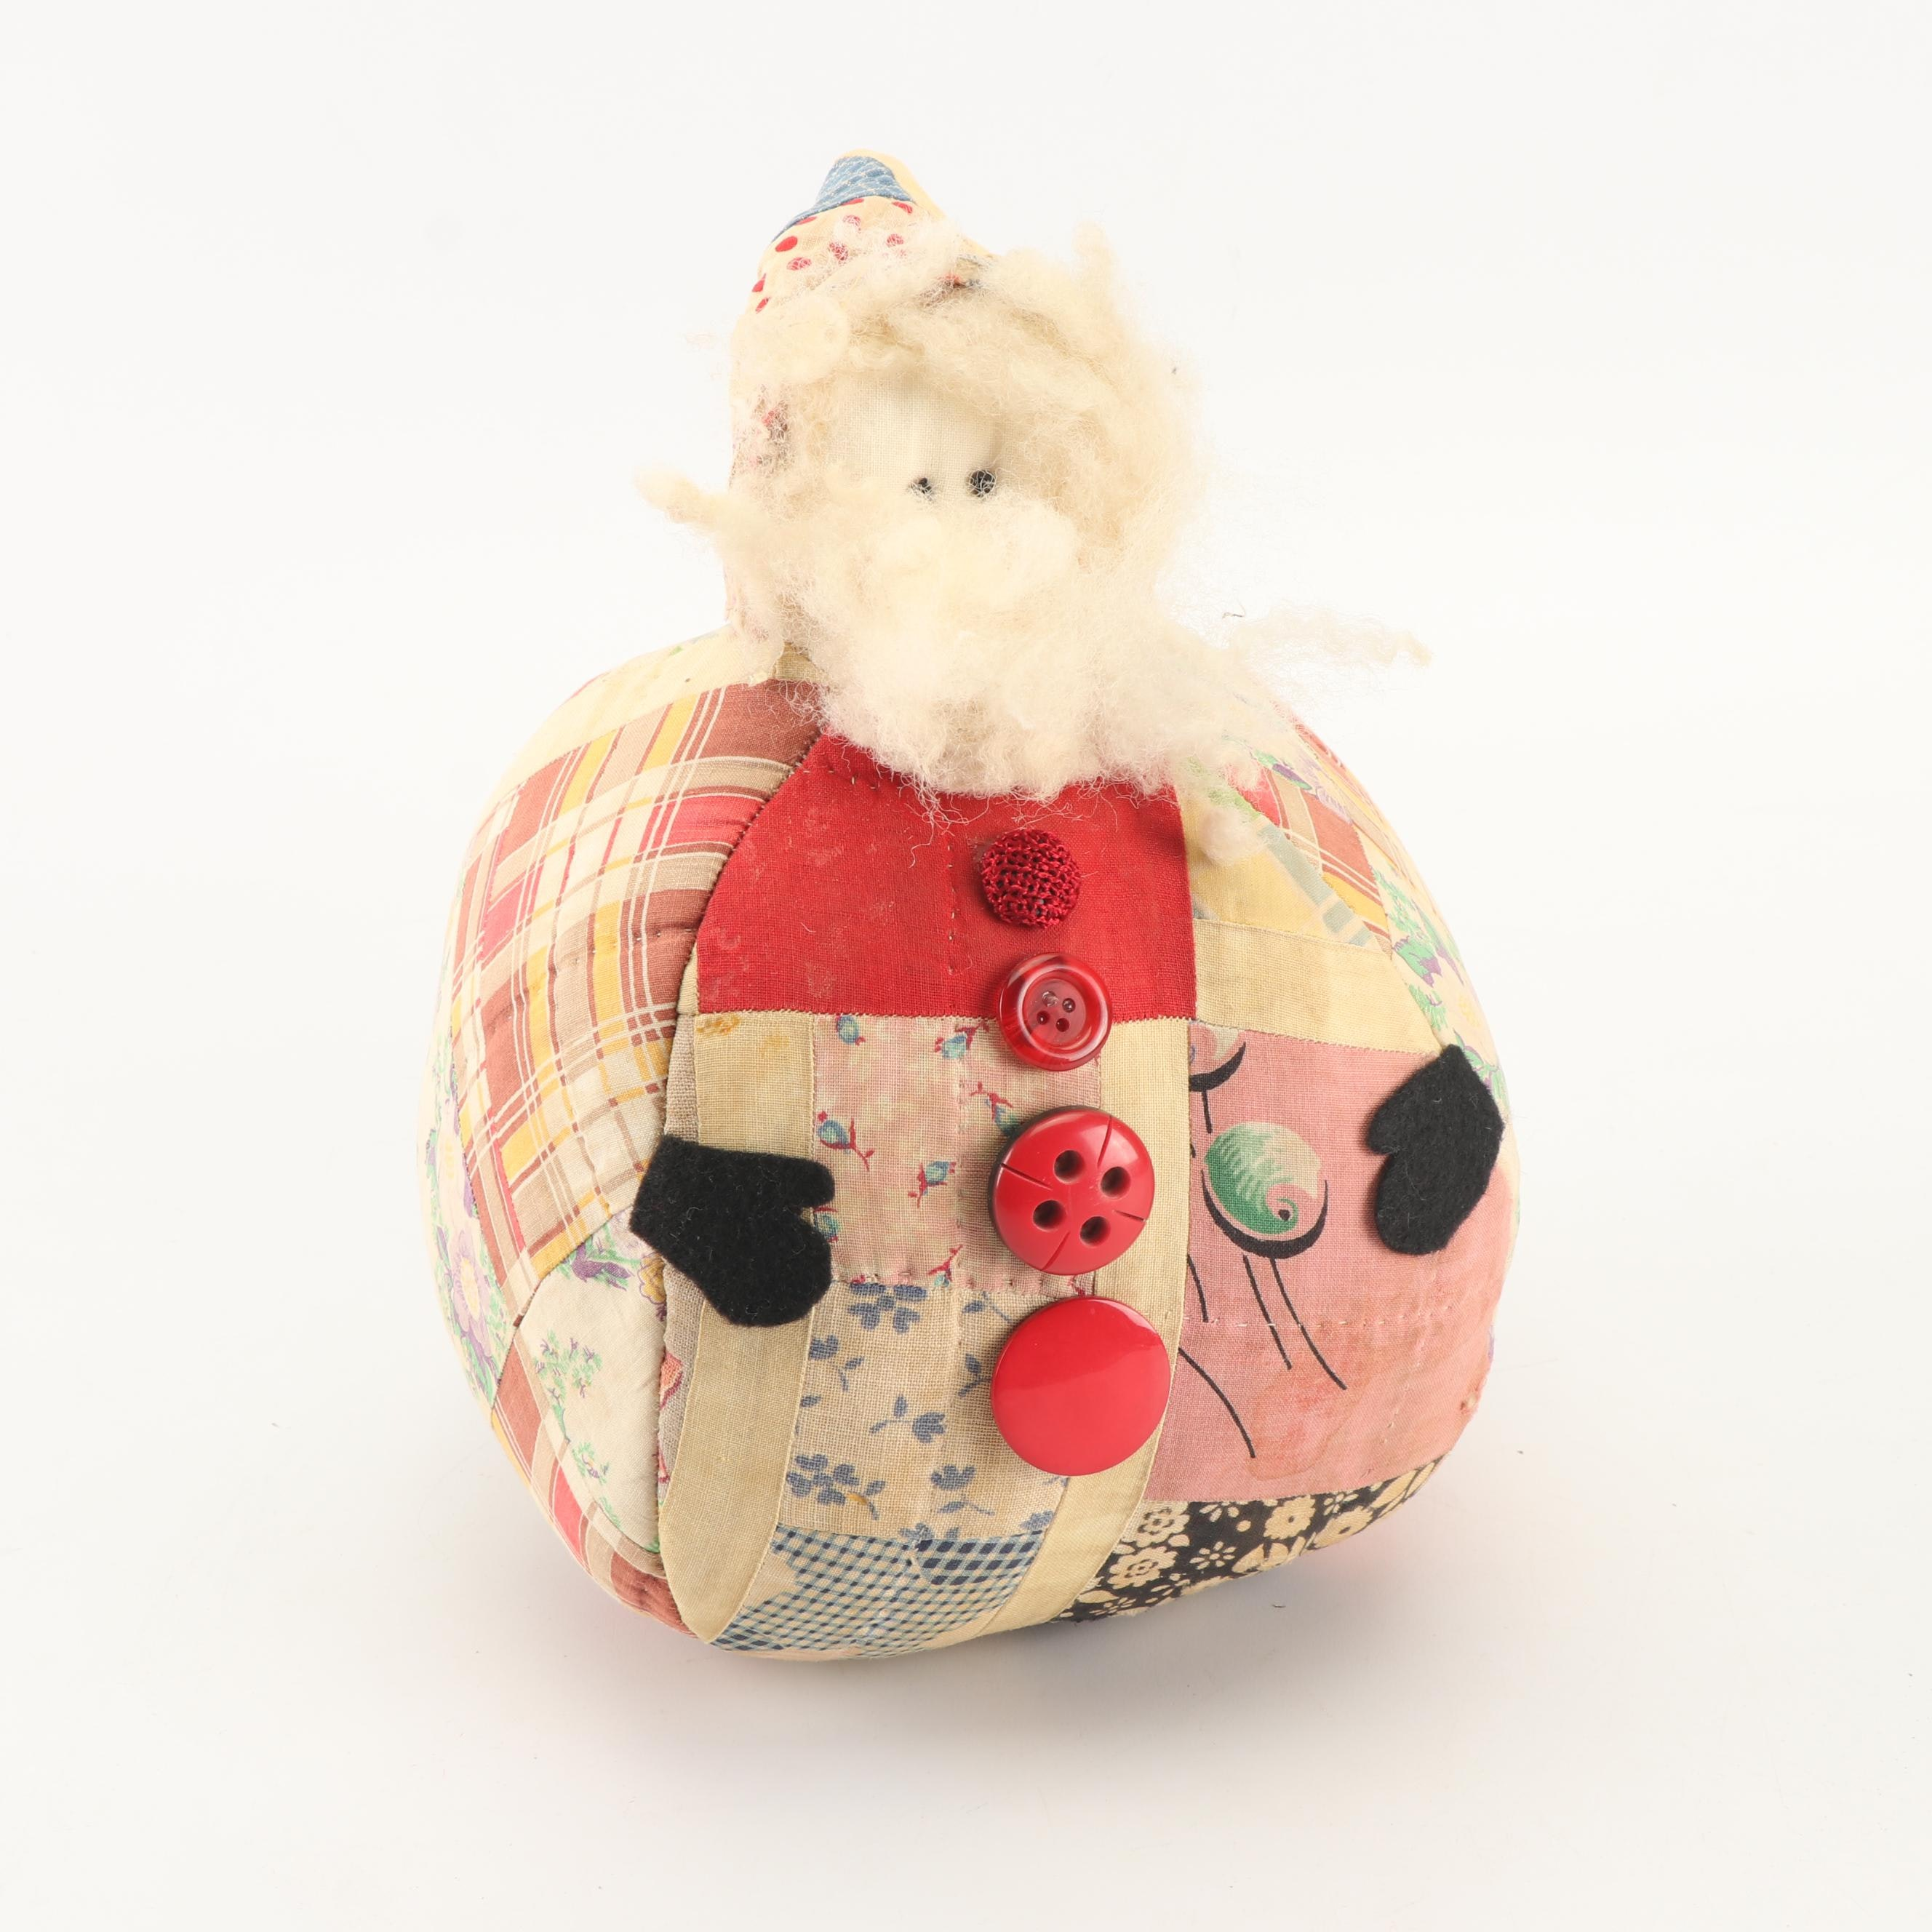 Hand-Crafted Quilted Plush Santa Claus